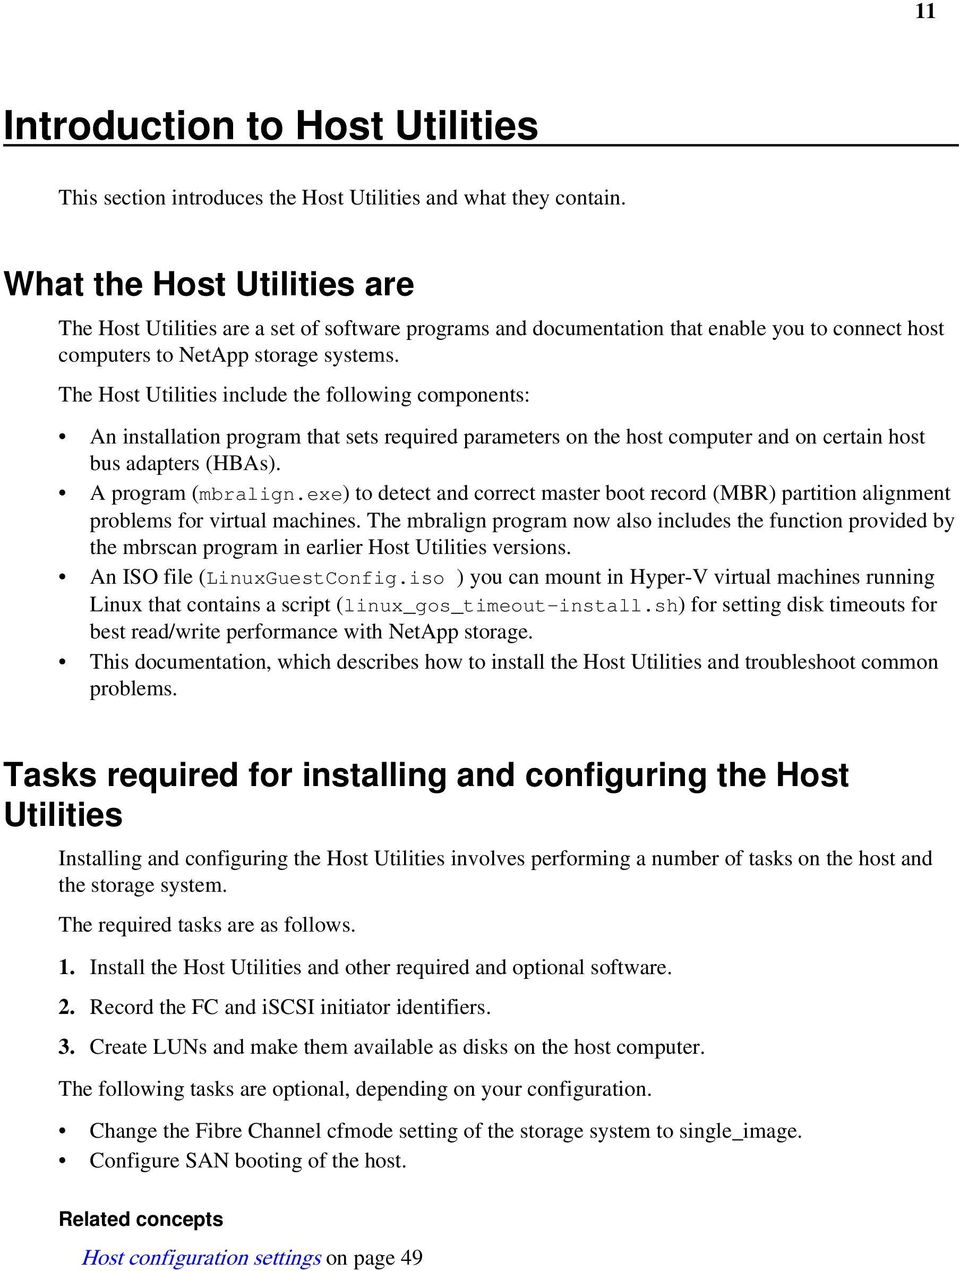 The Host Utilities include the following components: An installation program that sets required parameters on the host computer and on certain host bus adapters (HBAs). A program (mbralign.